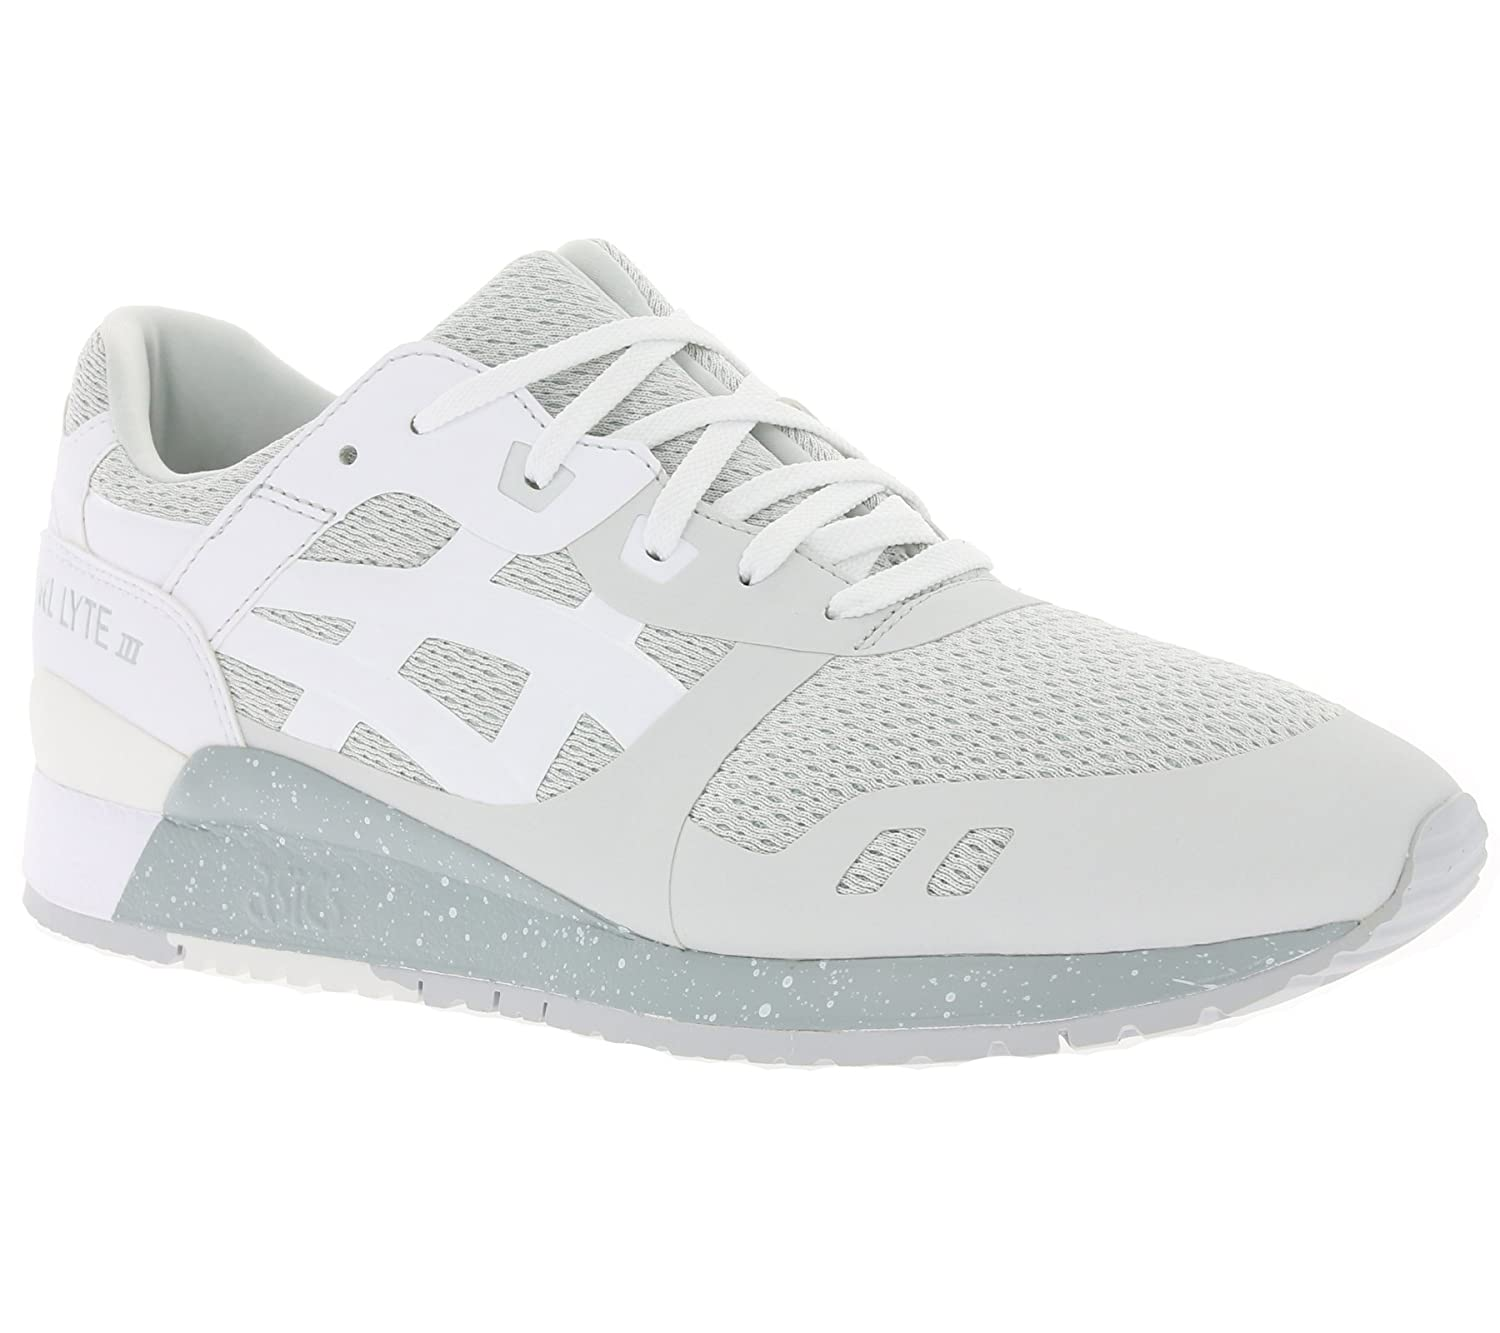 new product 3cb68 8730a Asics - Gel Lyte III NS Glacier Grey White - Sneakers Homme 30%OFF